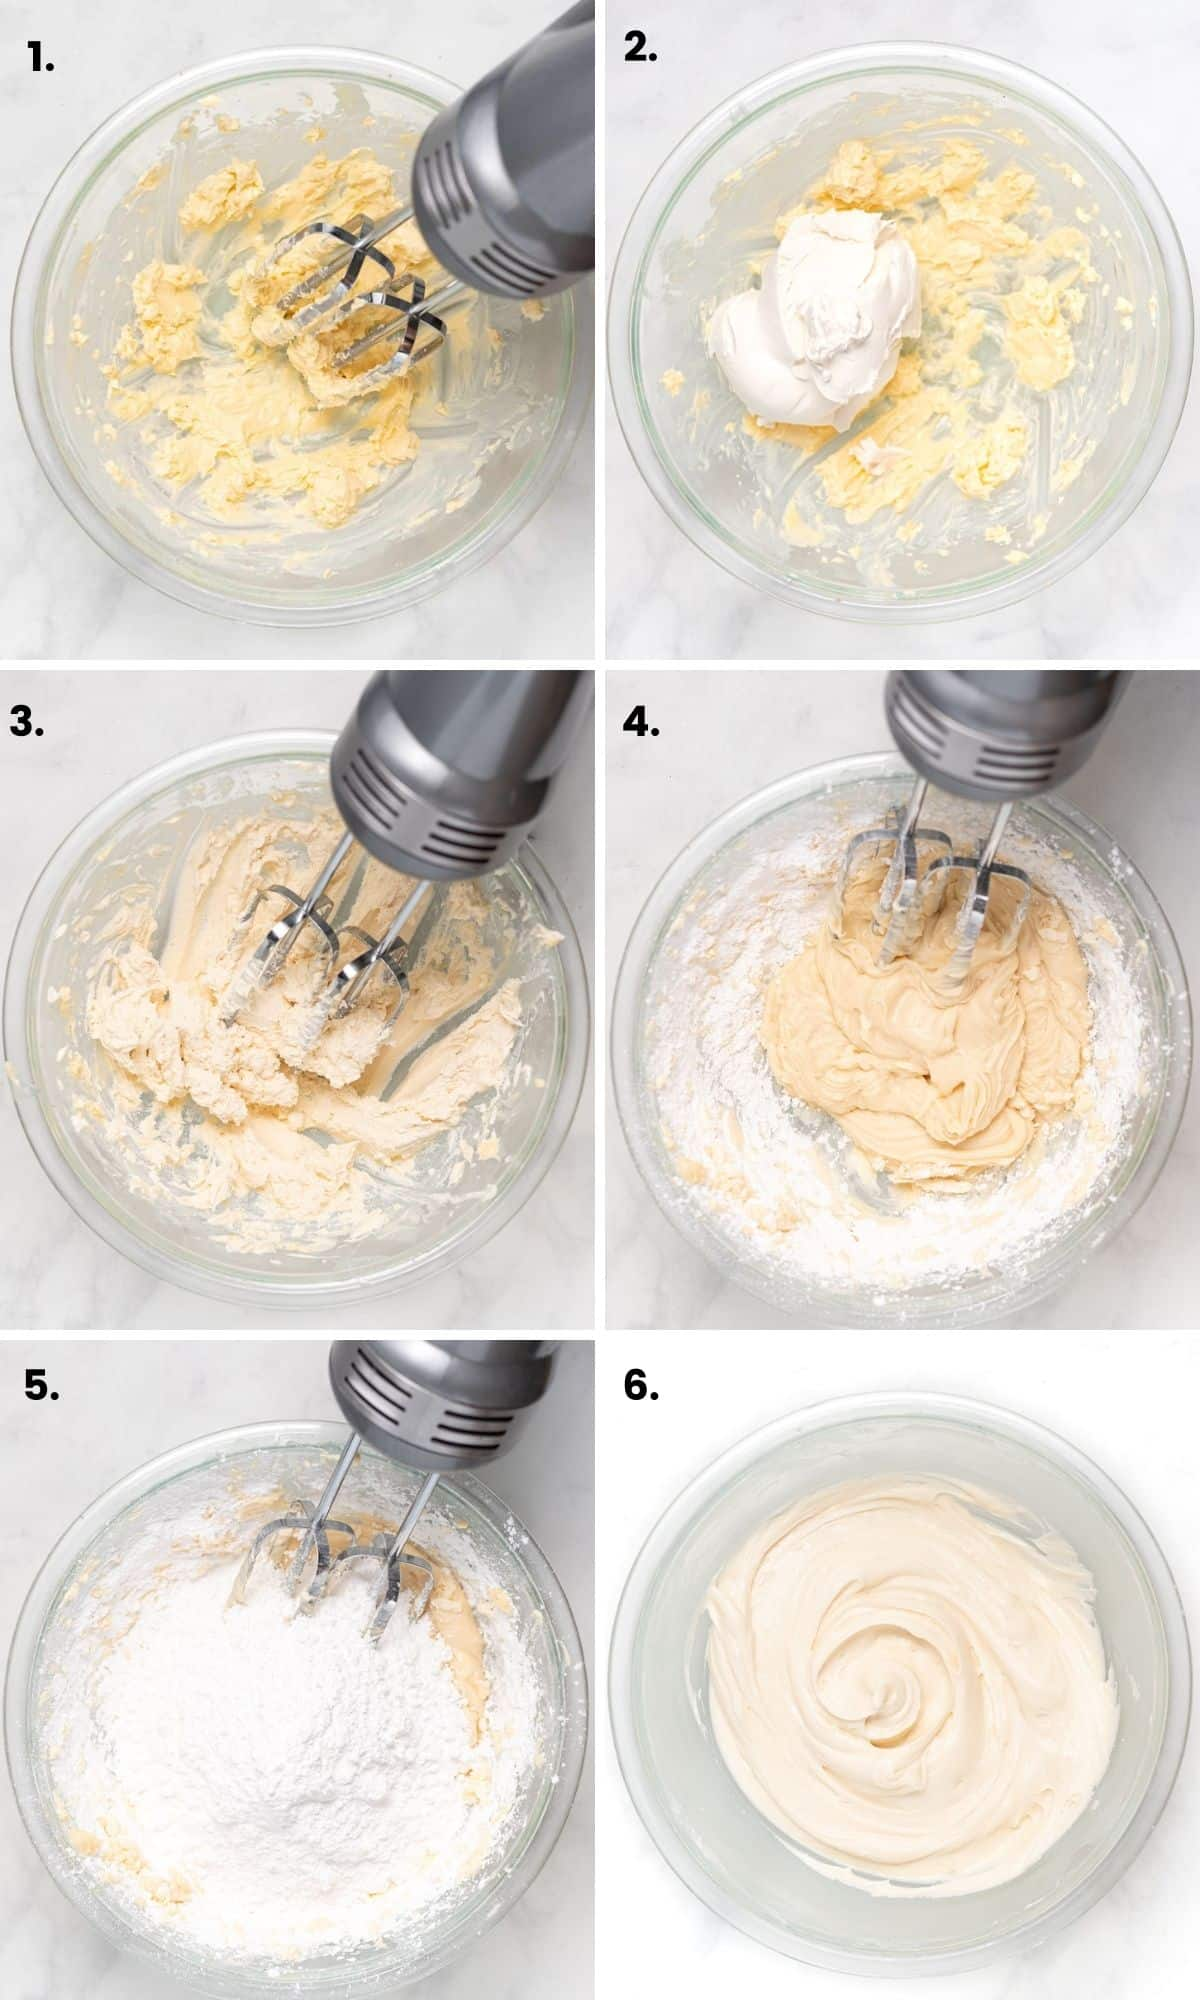 process photos showing how to make vegan cream cheese frosting as per written instructions